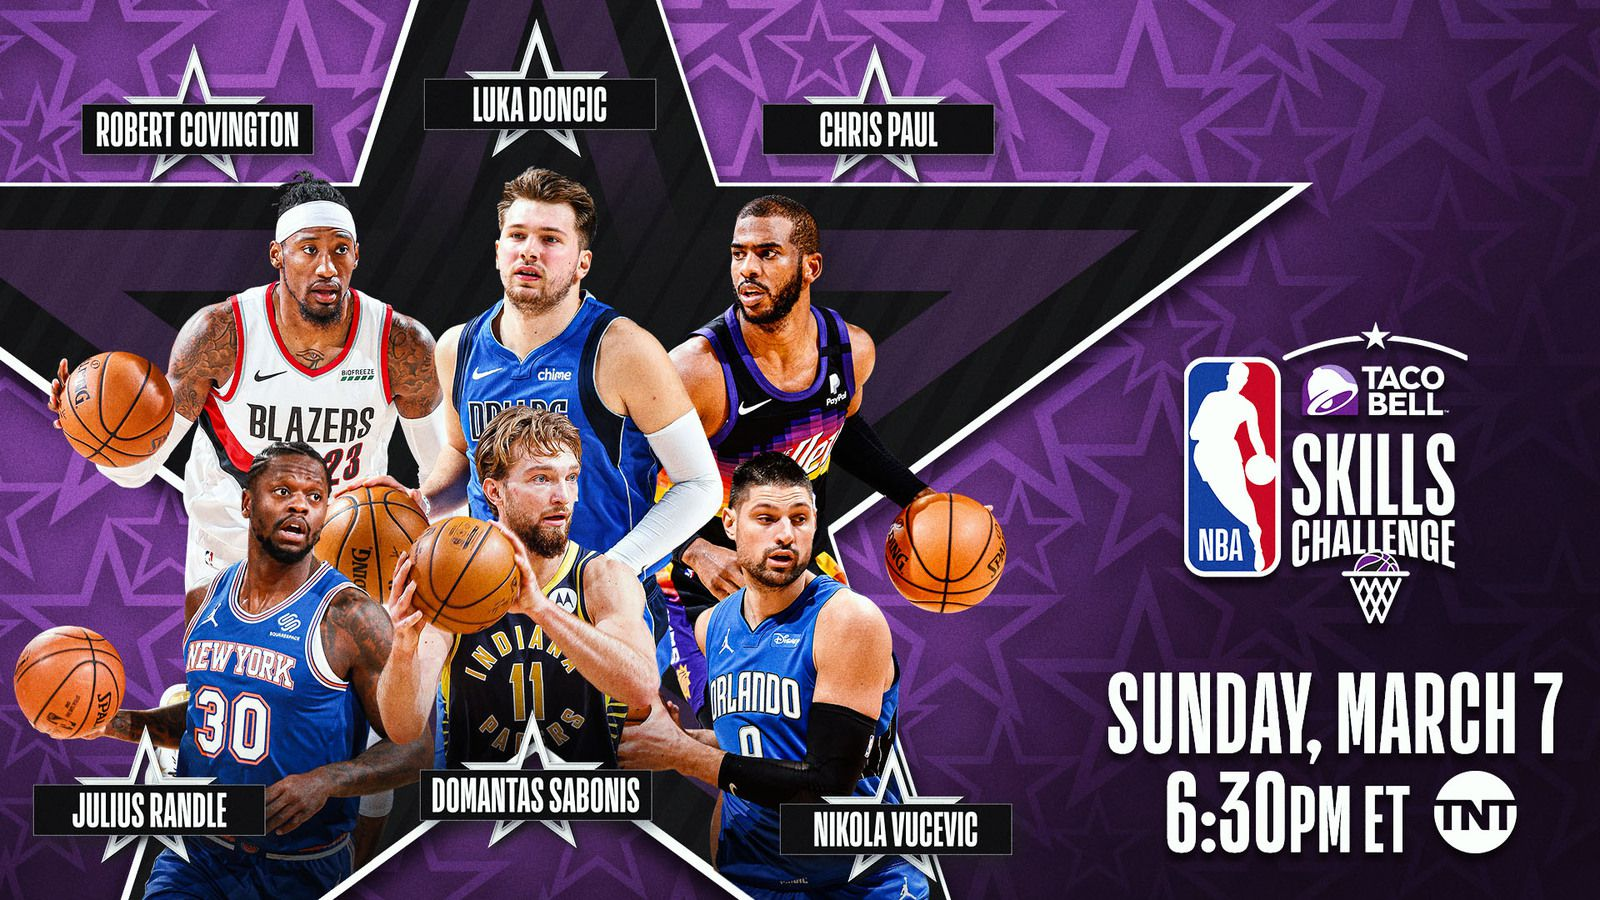 All-Star Game : Luka Doncic et Chris Paul prendront part au Skills Challenge